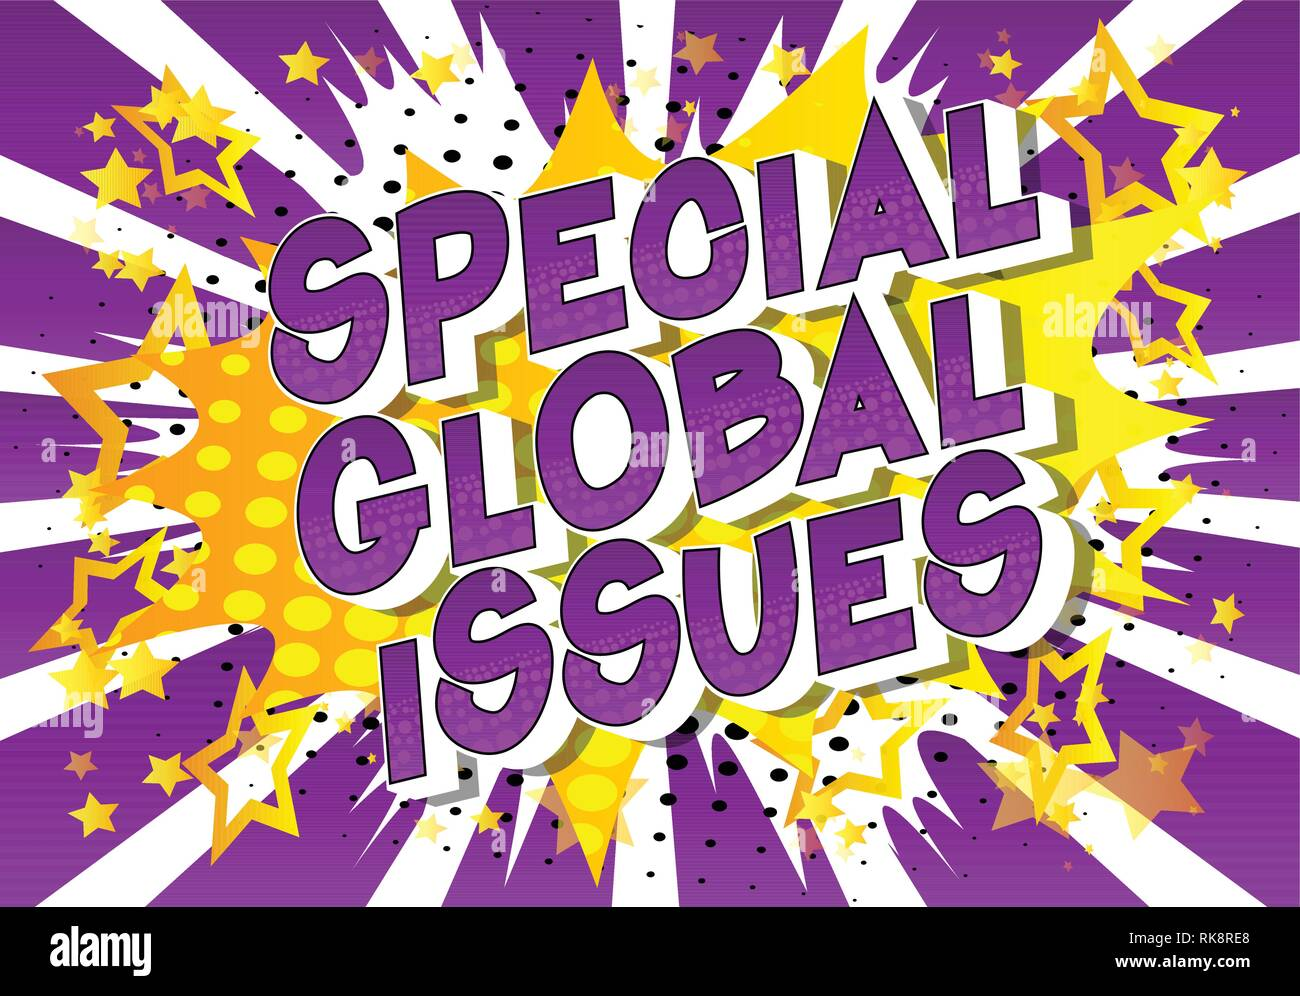 Special Global Issues - Vector illustrated comic book style phrase on abstract background. - Stock Vector